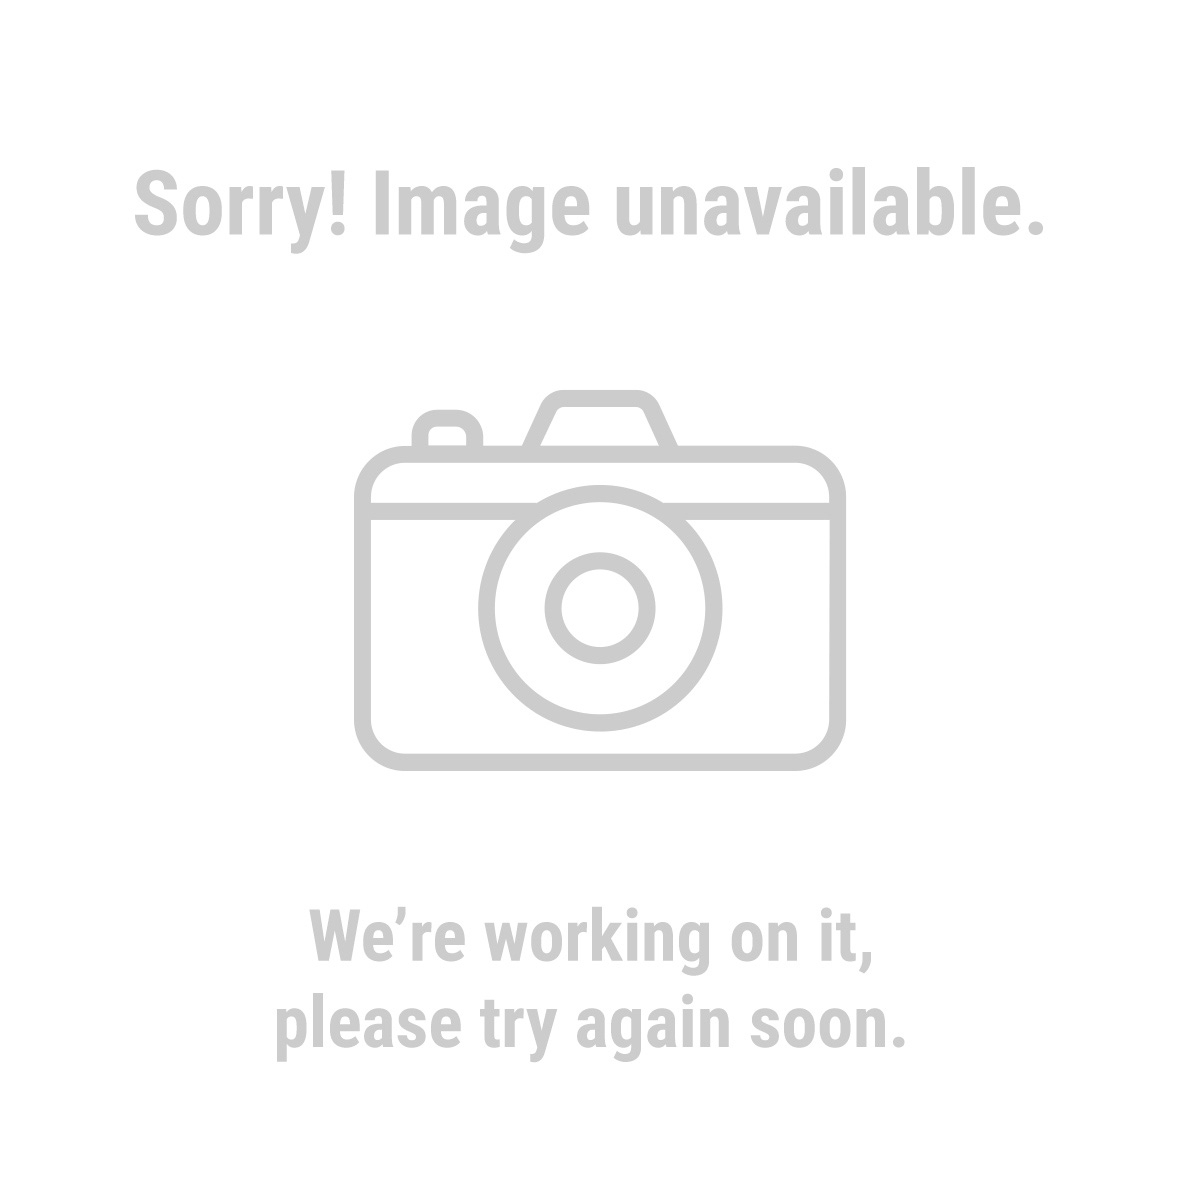 HFT 69208 28 ft. 10 in. x 59 ft. Reflective Heavy Duty Silver Tarp